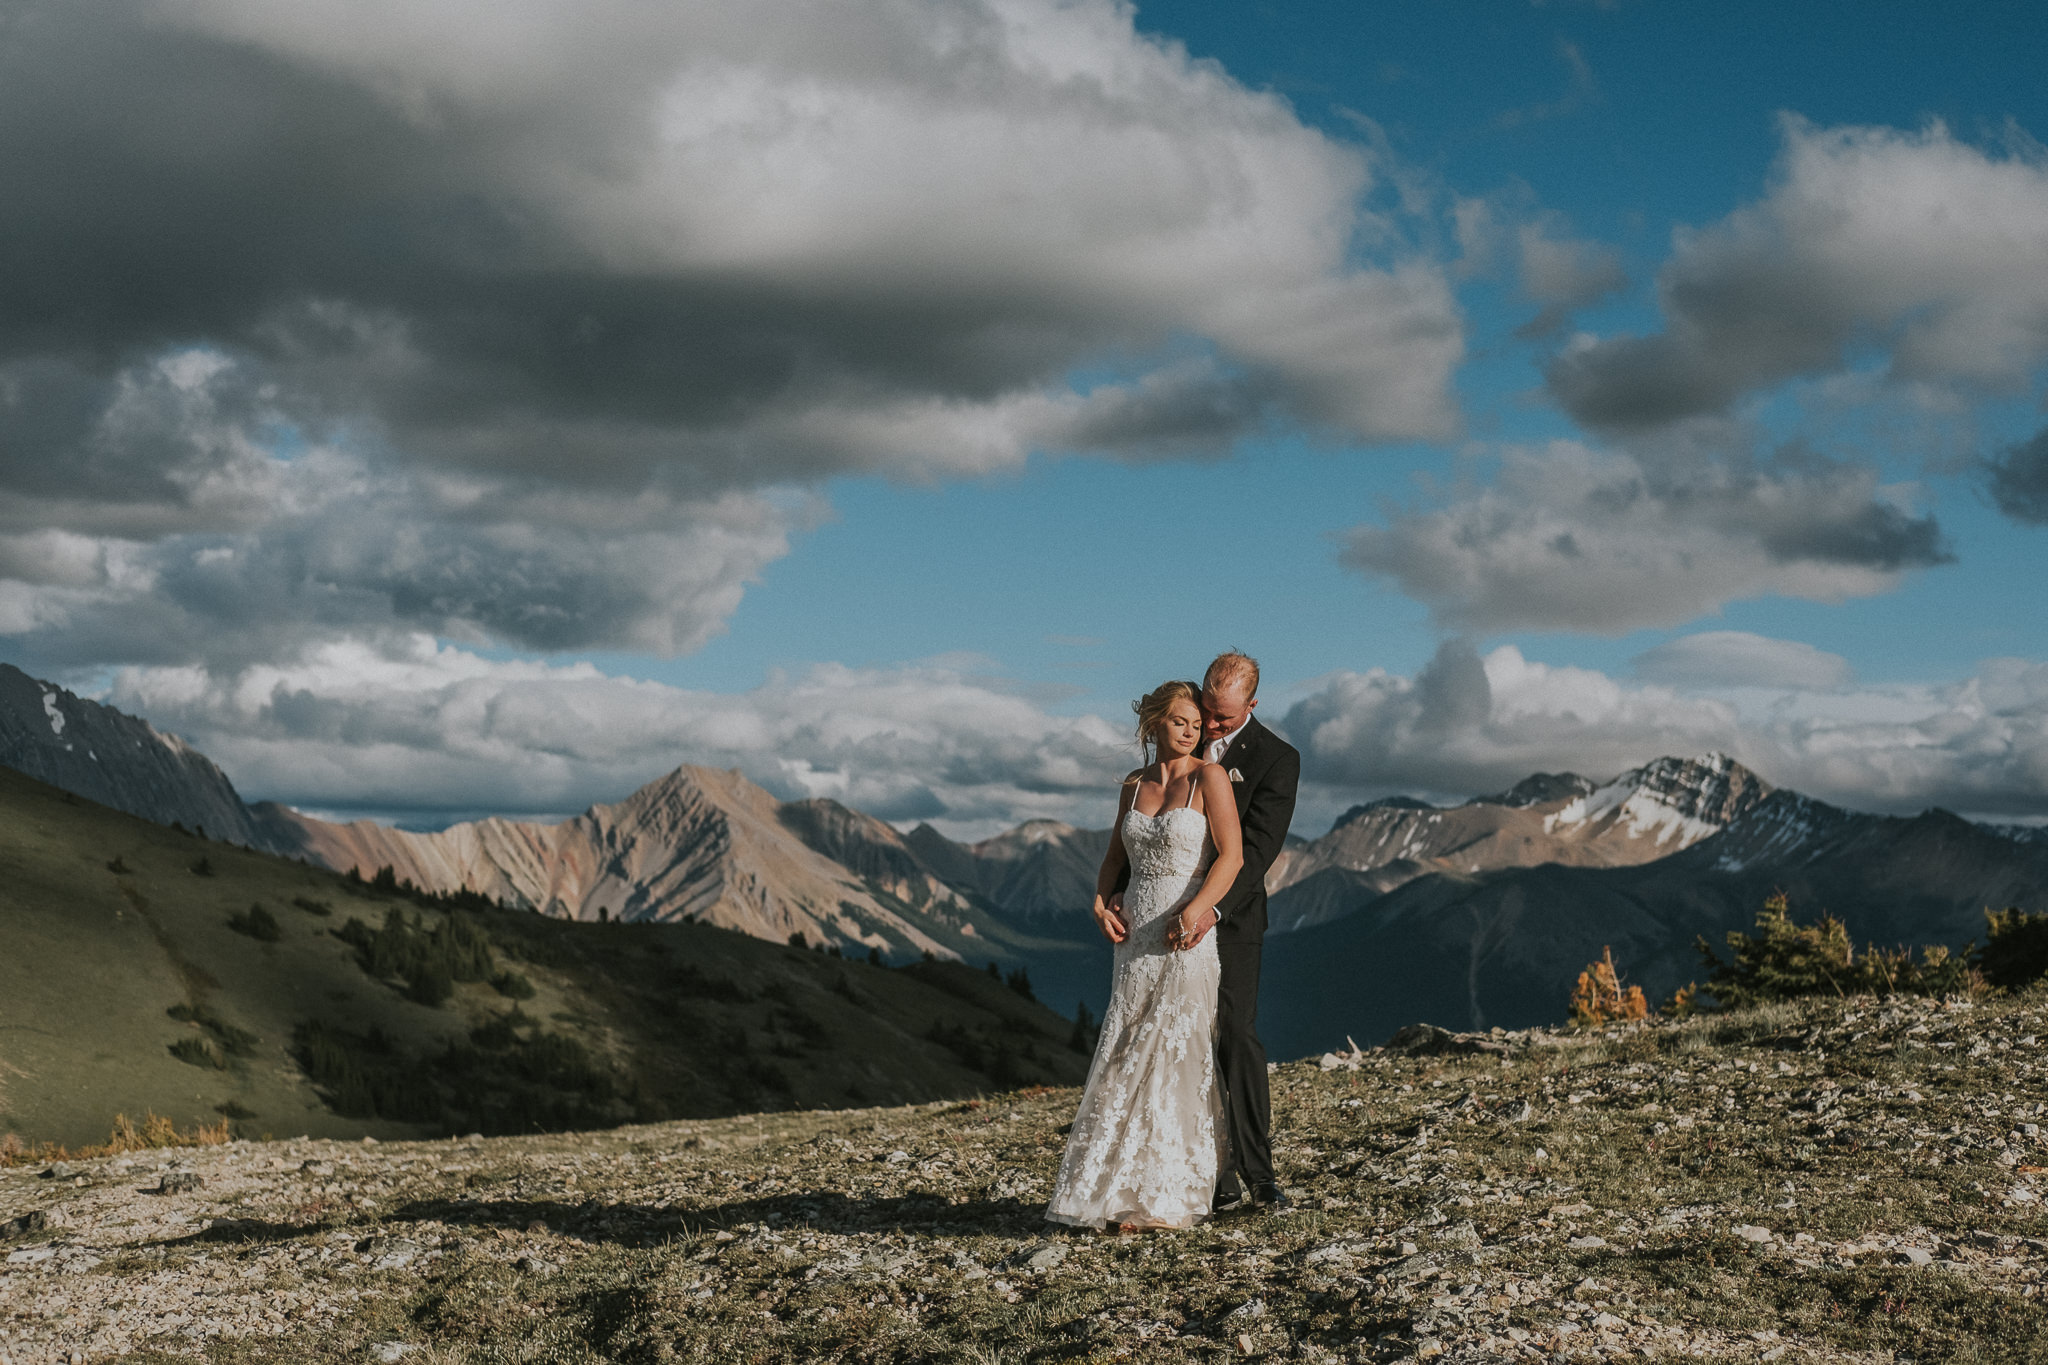 Banff Wedding Photography Packages